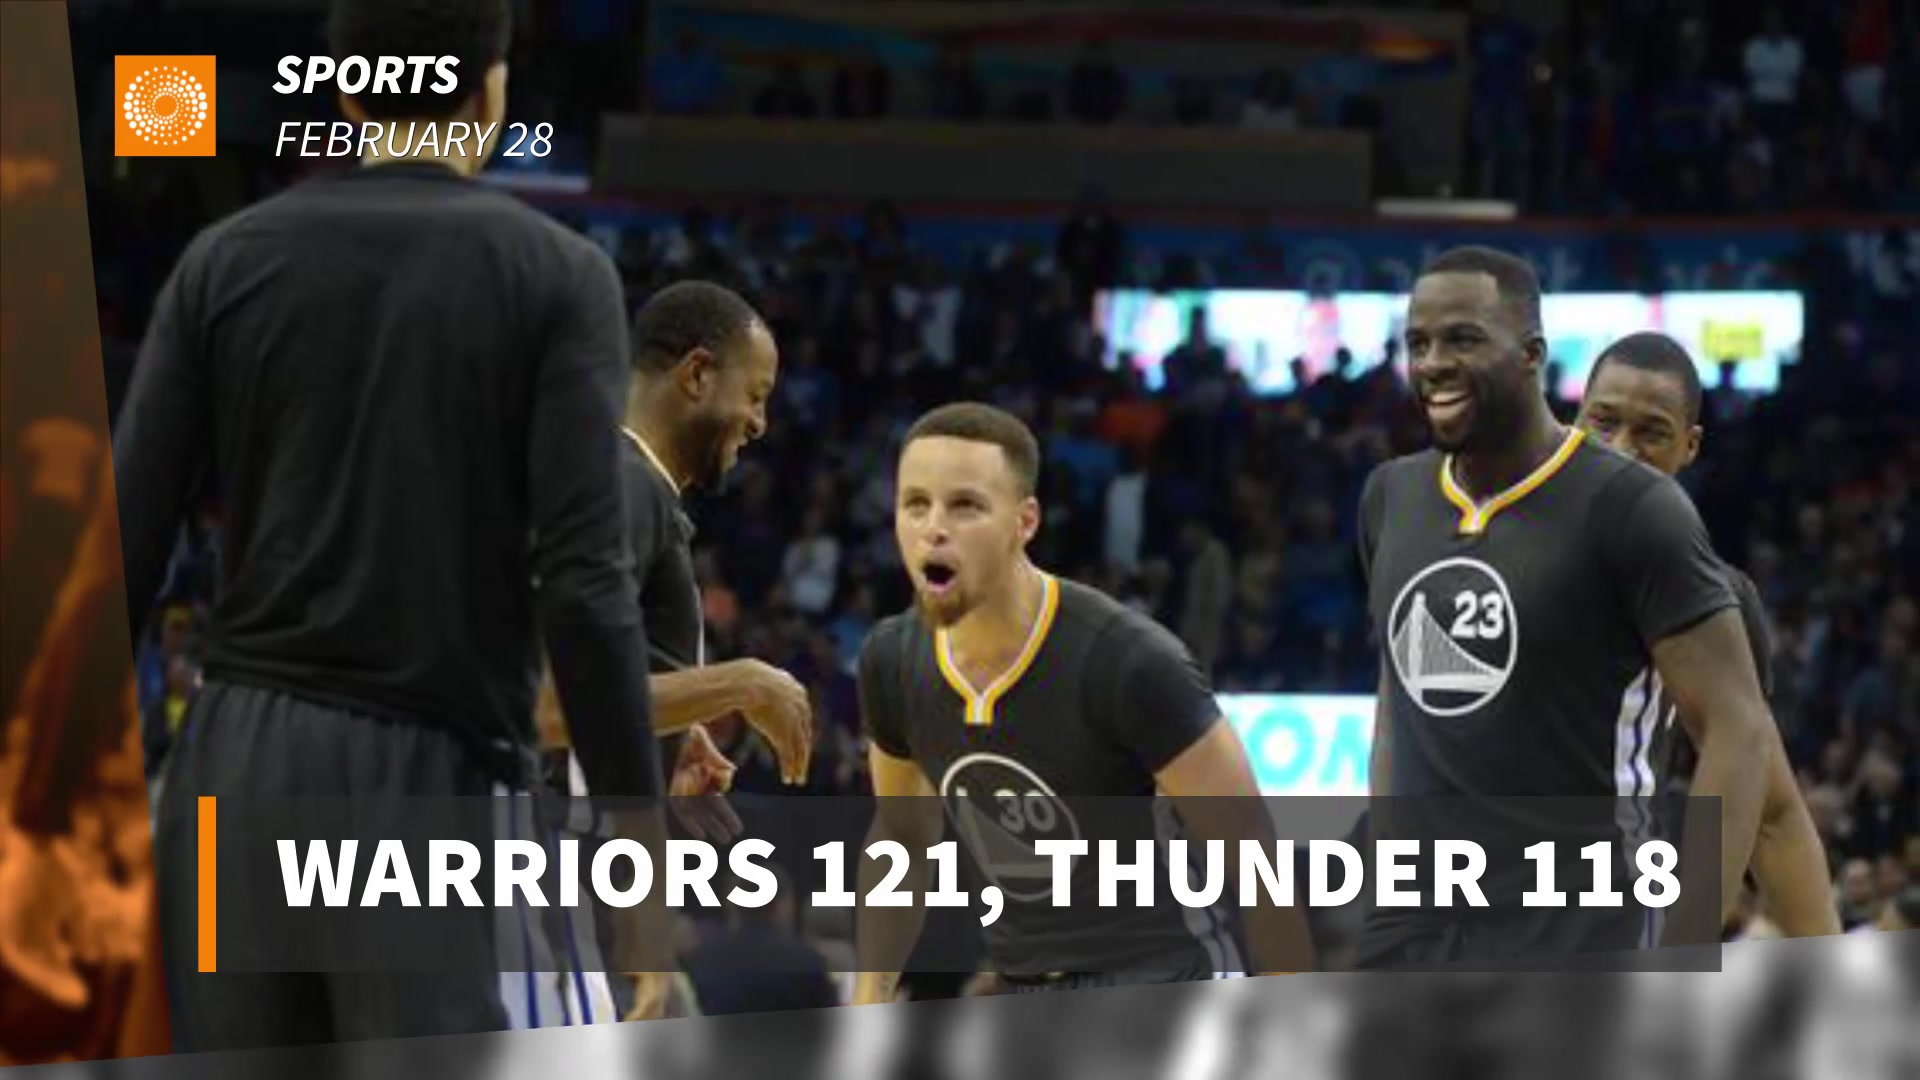 Warriors 121, Thunder 118